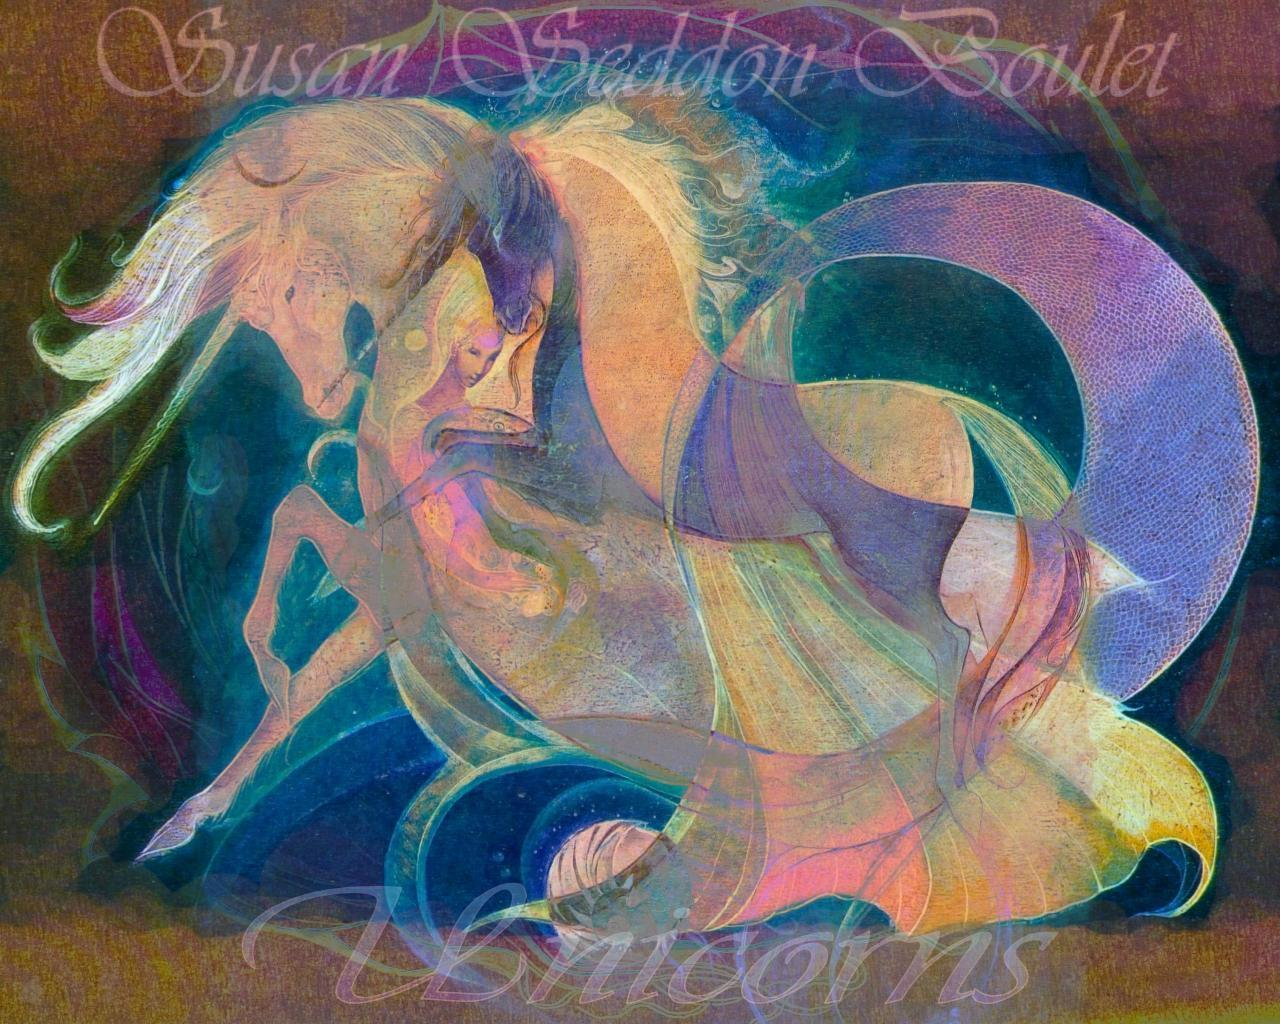 Susan Seddon Boulet: The Goddess Paintings by Susan Seddon Boulet